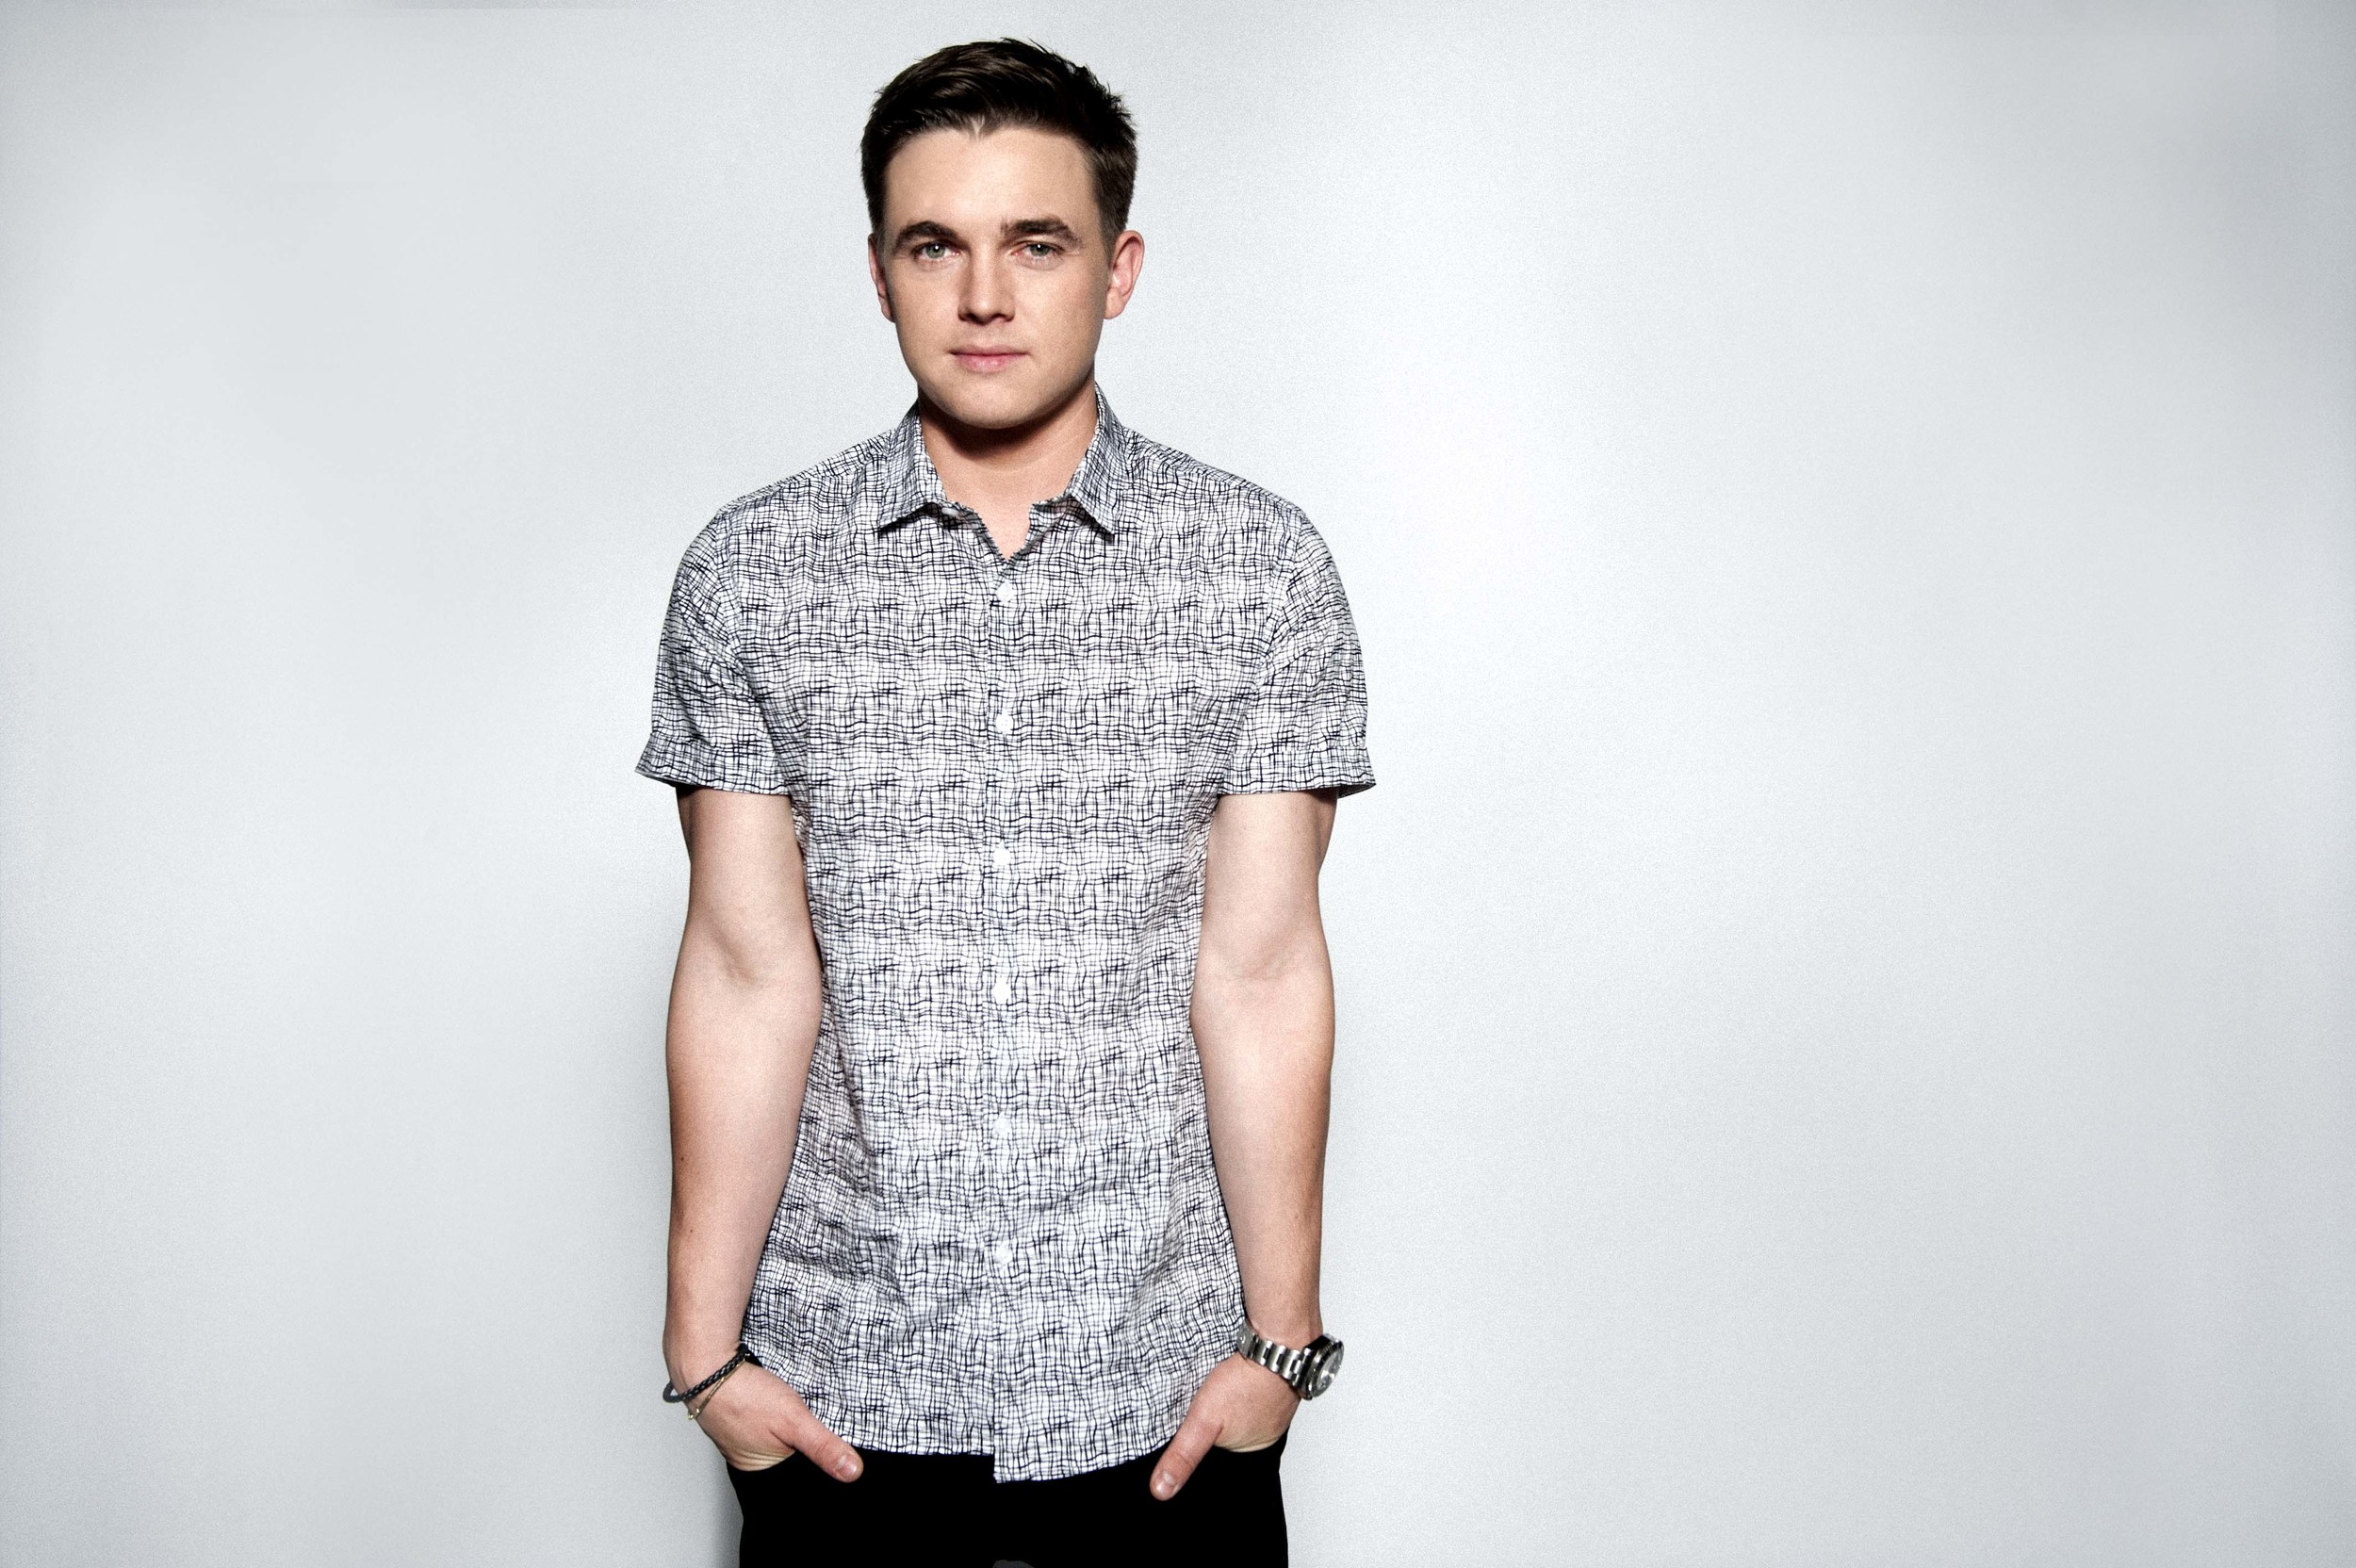 JesseMcCartney_Portraits_060914_28.jpg